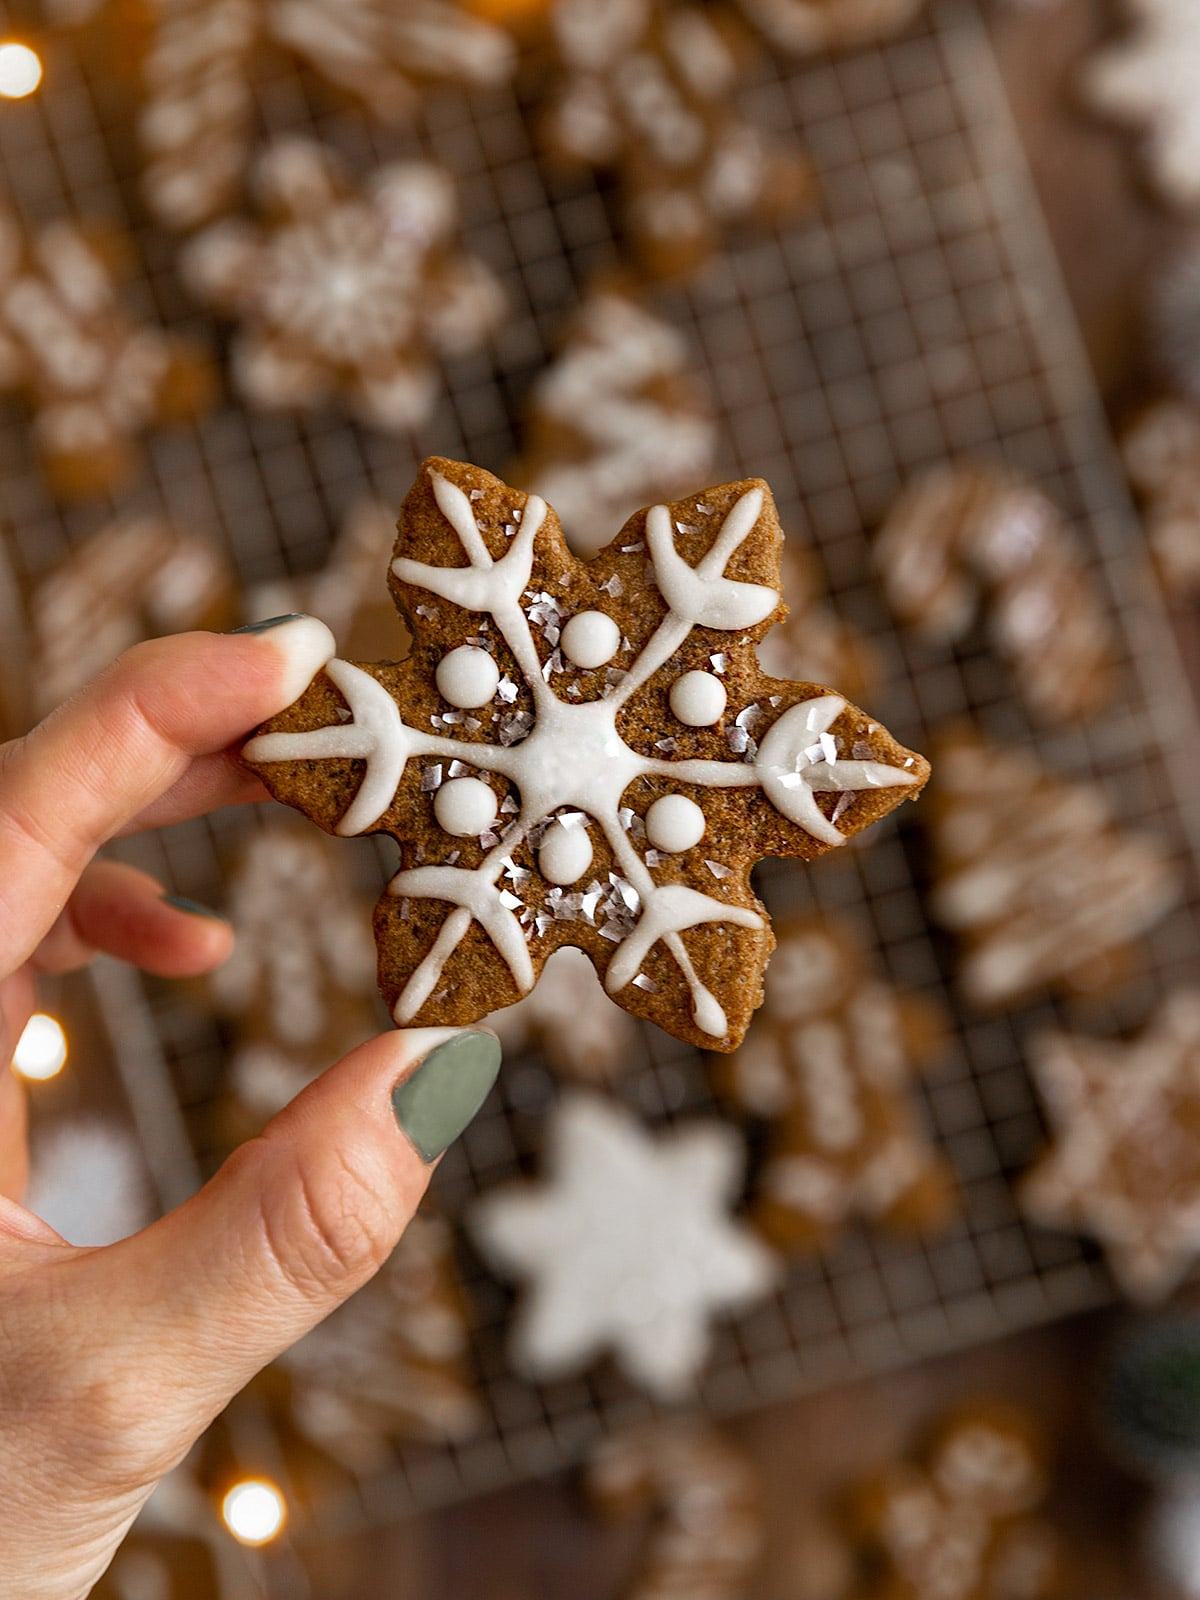 hand holding a decorated snowflake gingerbread cookie